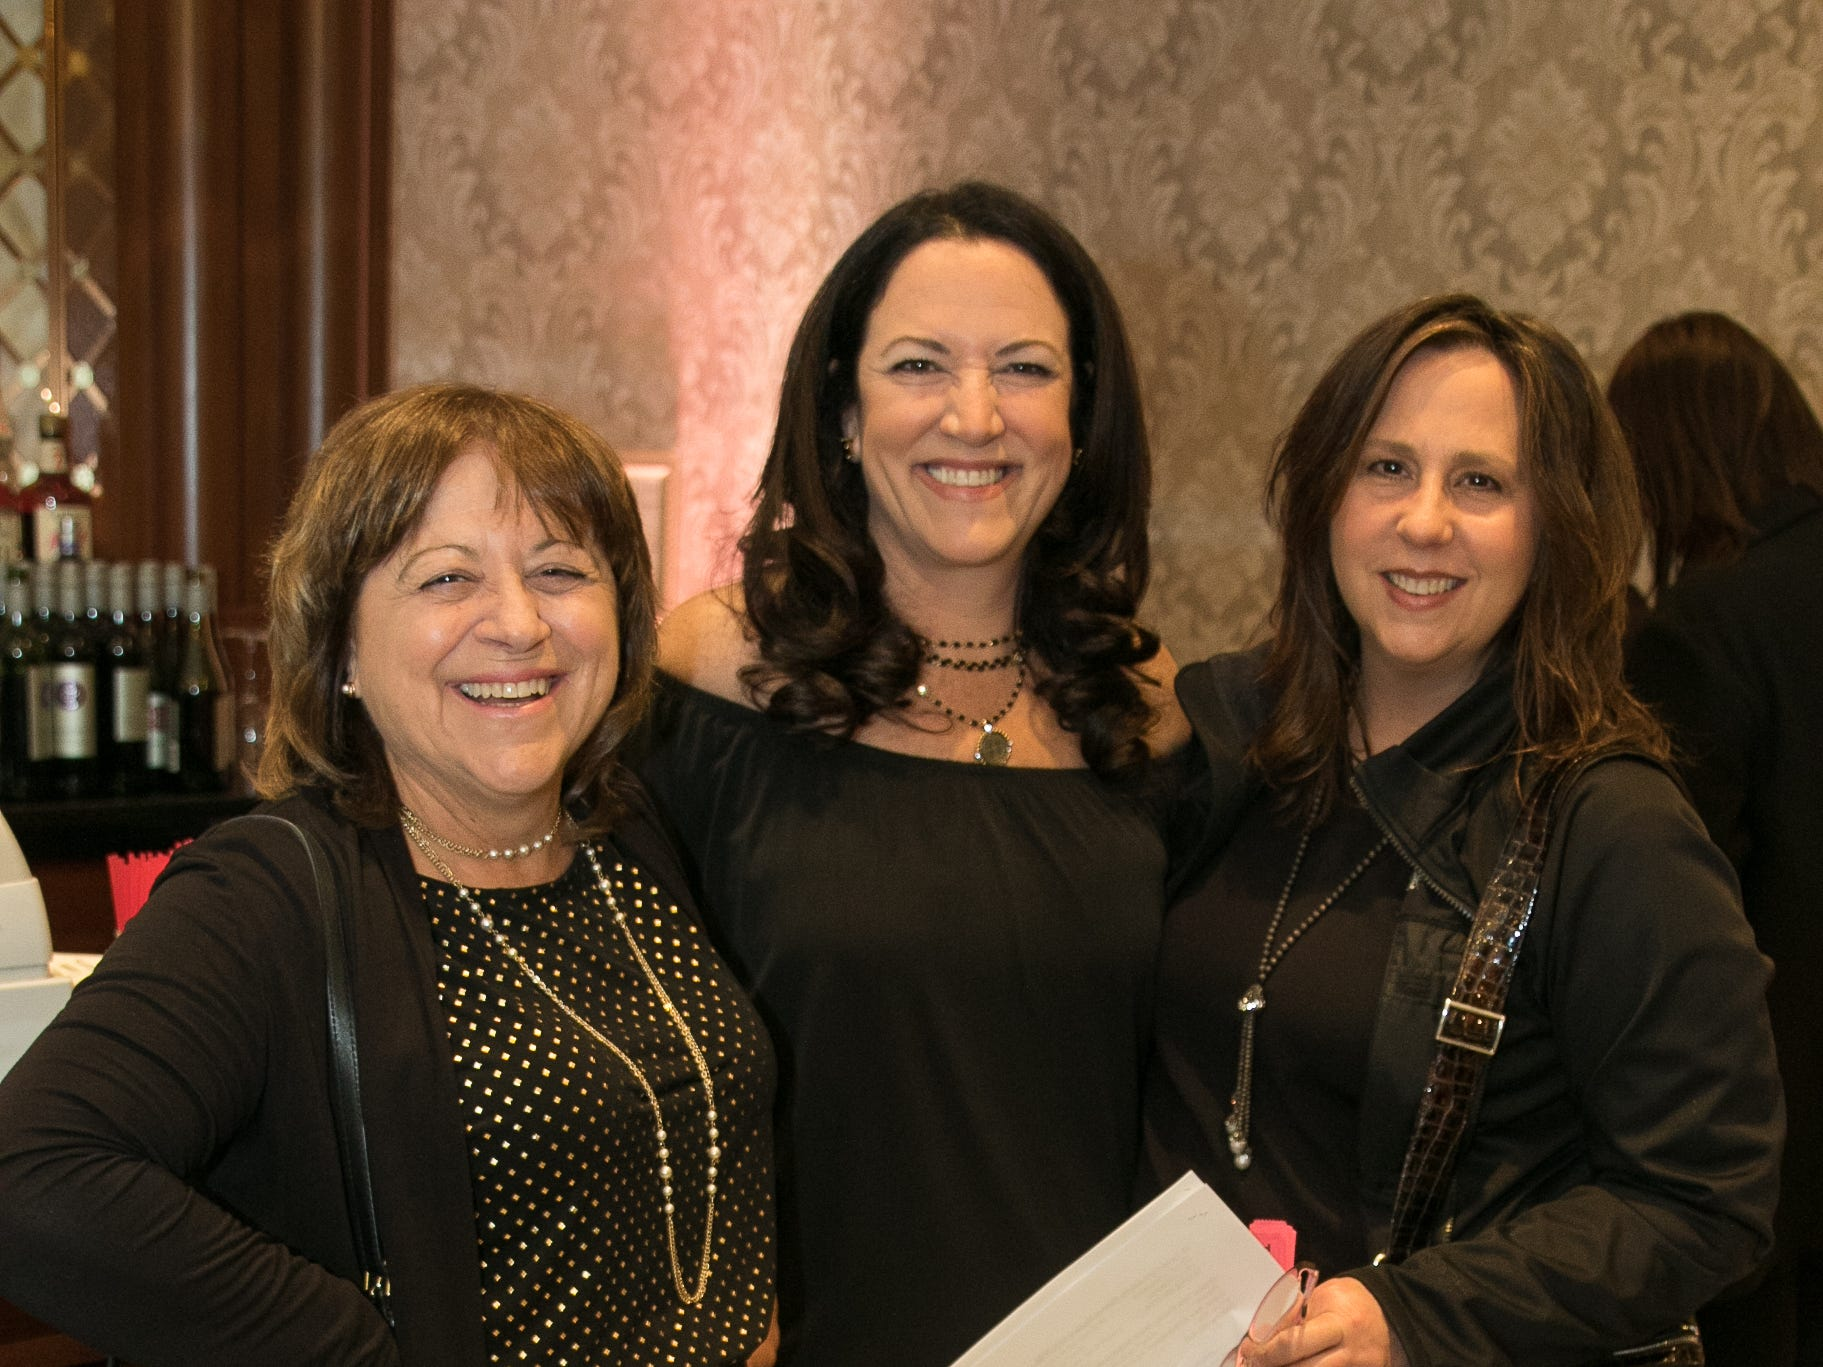 Laura Scott, Lisa Unanue, Colleen Callas. New Hope, a Pregnancy Resource Center, held their annual gala at Seasons in Washington Township. 04/05/2019